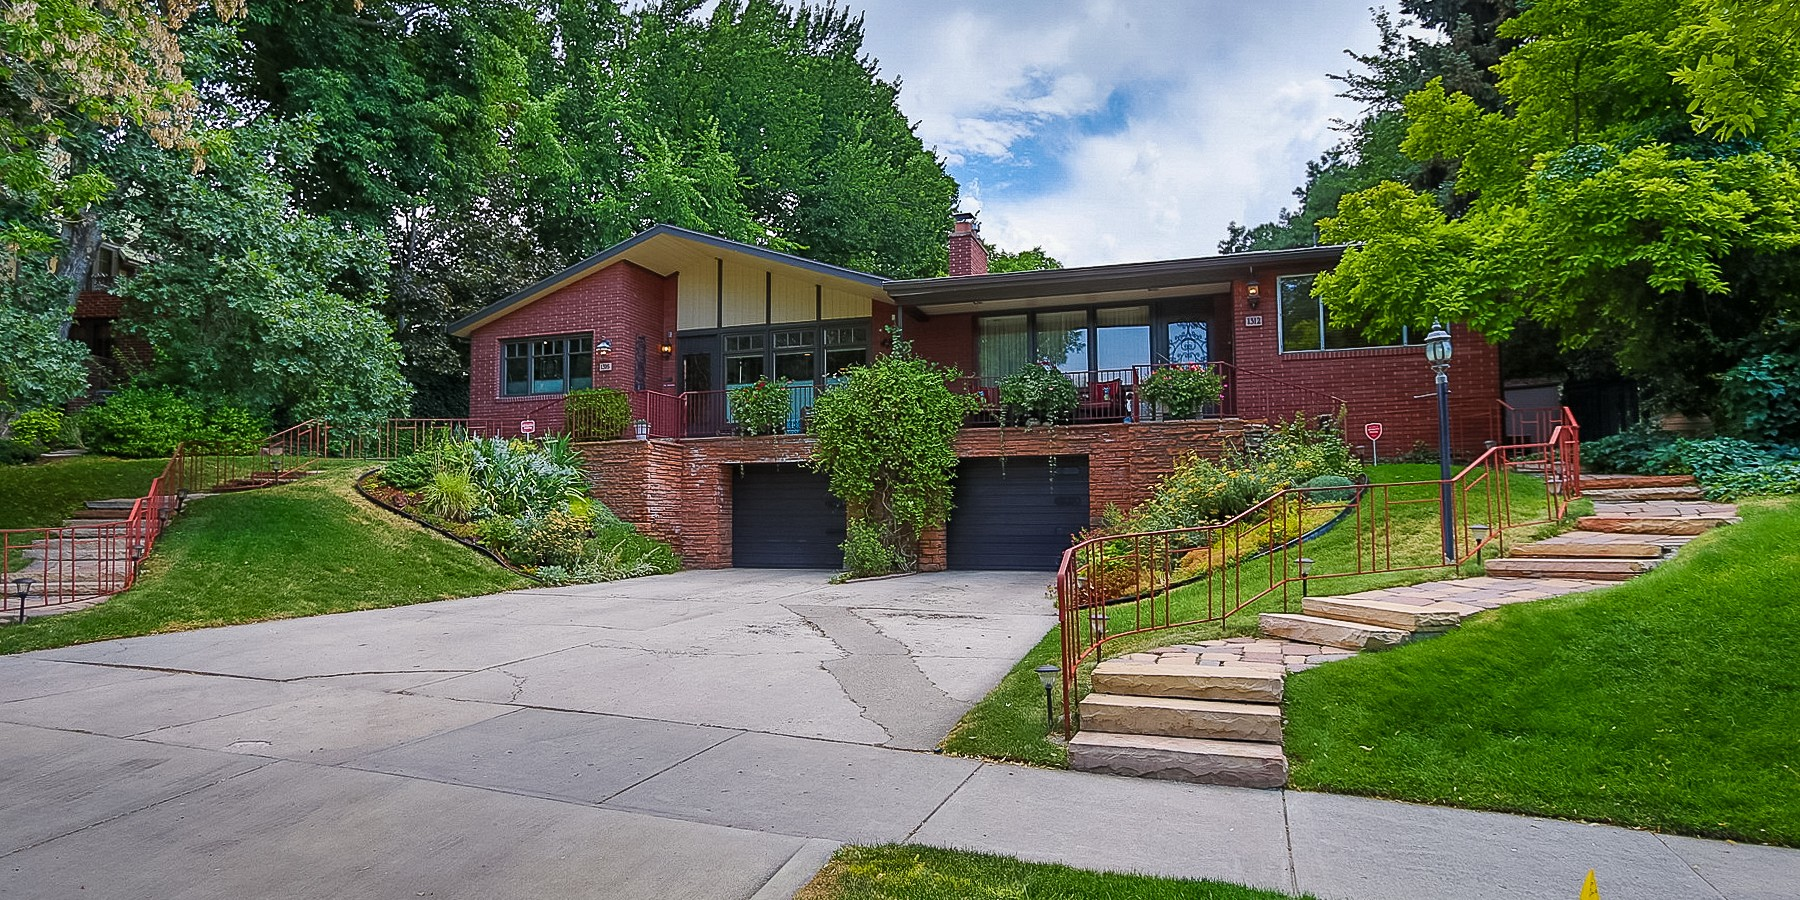 1316 E. Harvard Avenue, Salt Lake City, UT 84105